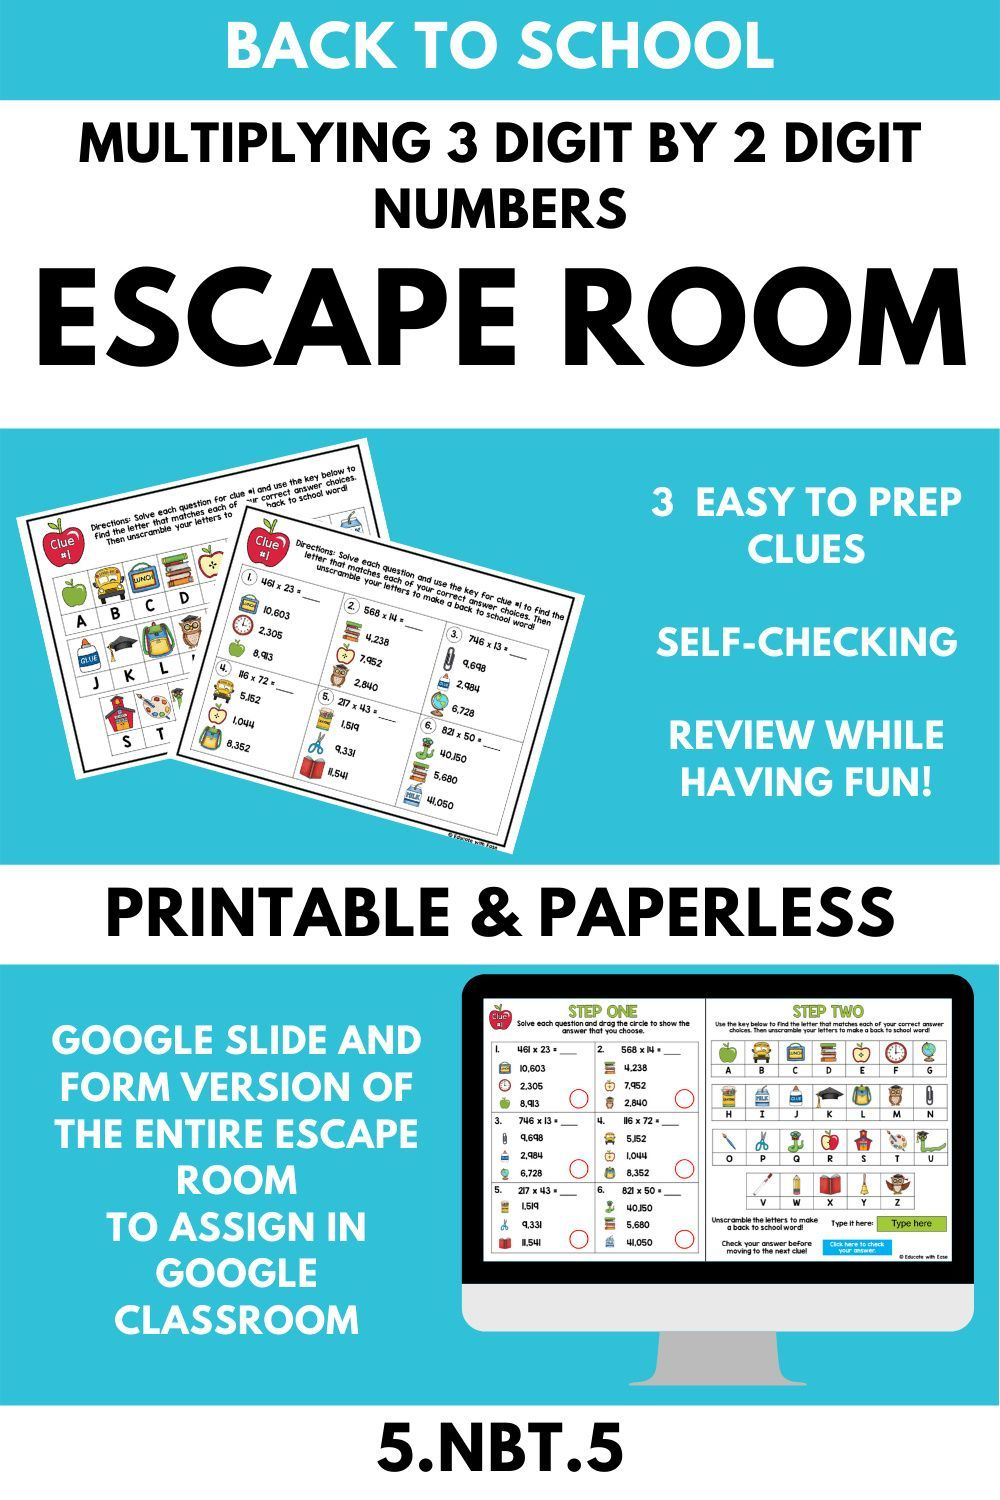 medium resolution of Multiplying 3 Digit by 2 Digit Numbers 5.NBT.5 BACK TO SCHOOL Escape Room    Upper elementary math